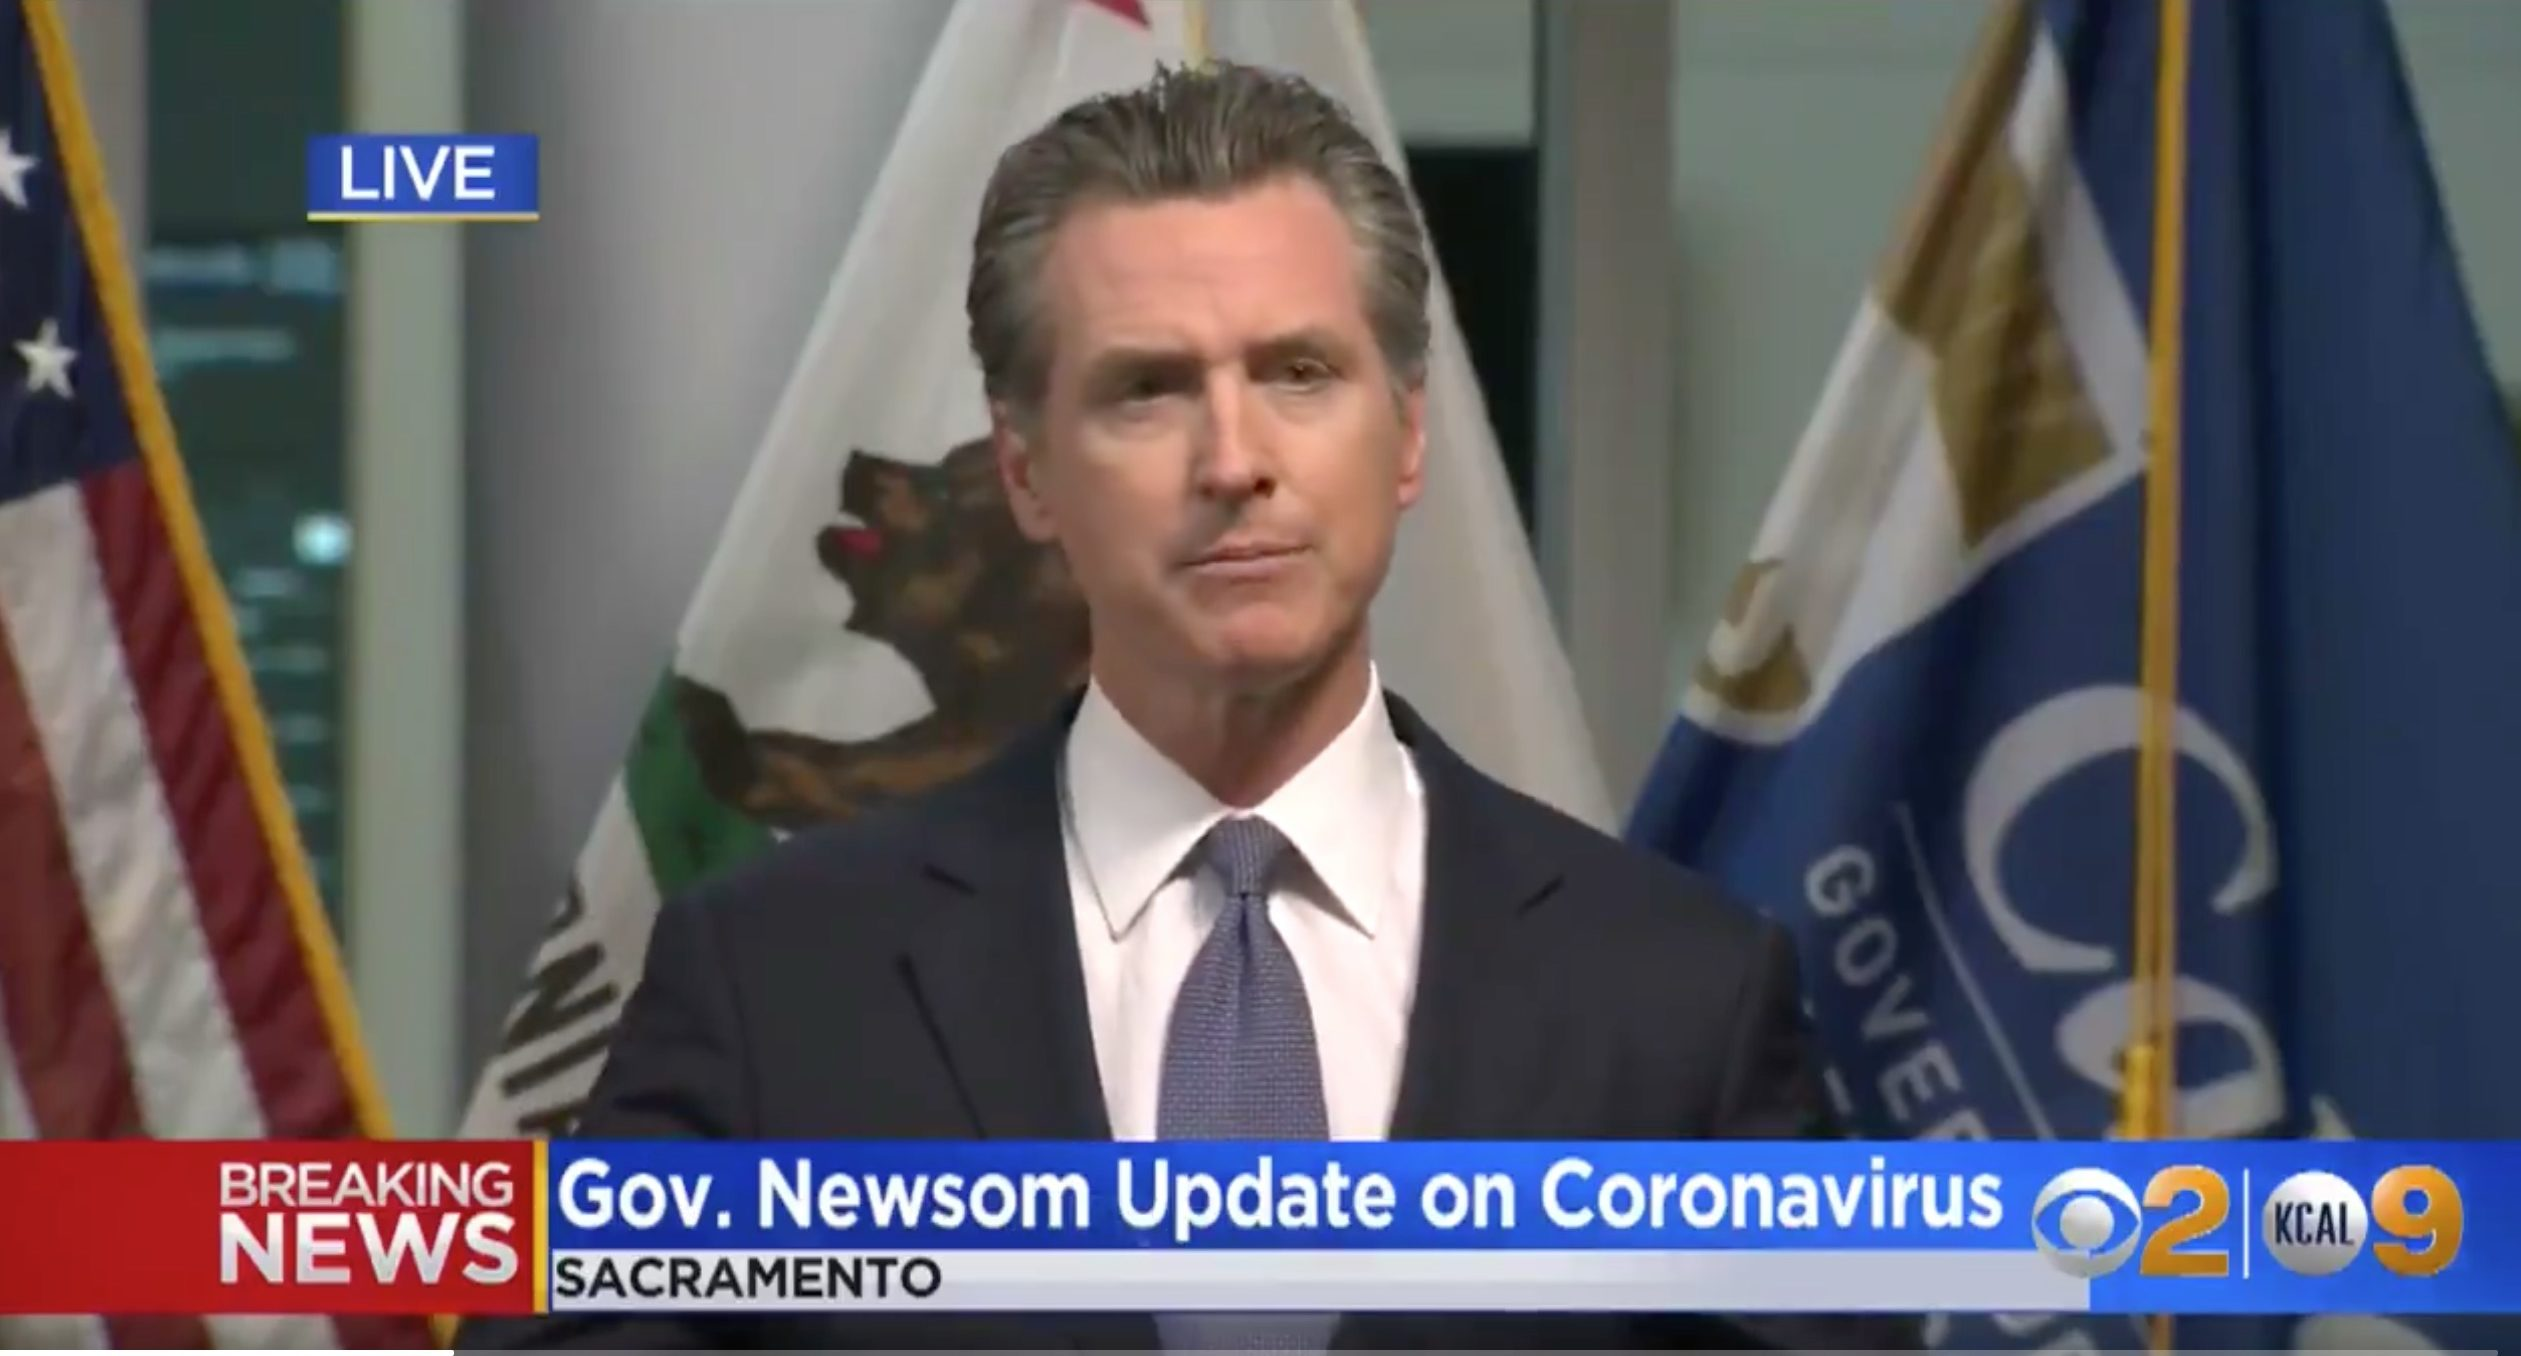 Breaking: California Gov. Gavin Newsom Issues a Statewide Stay at Home Order